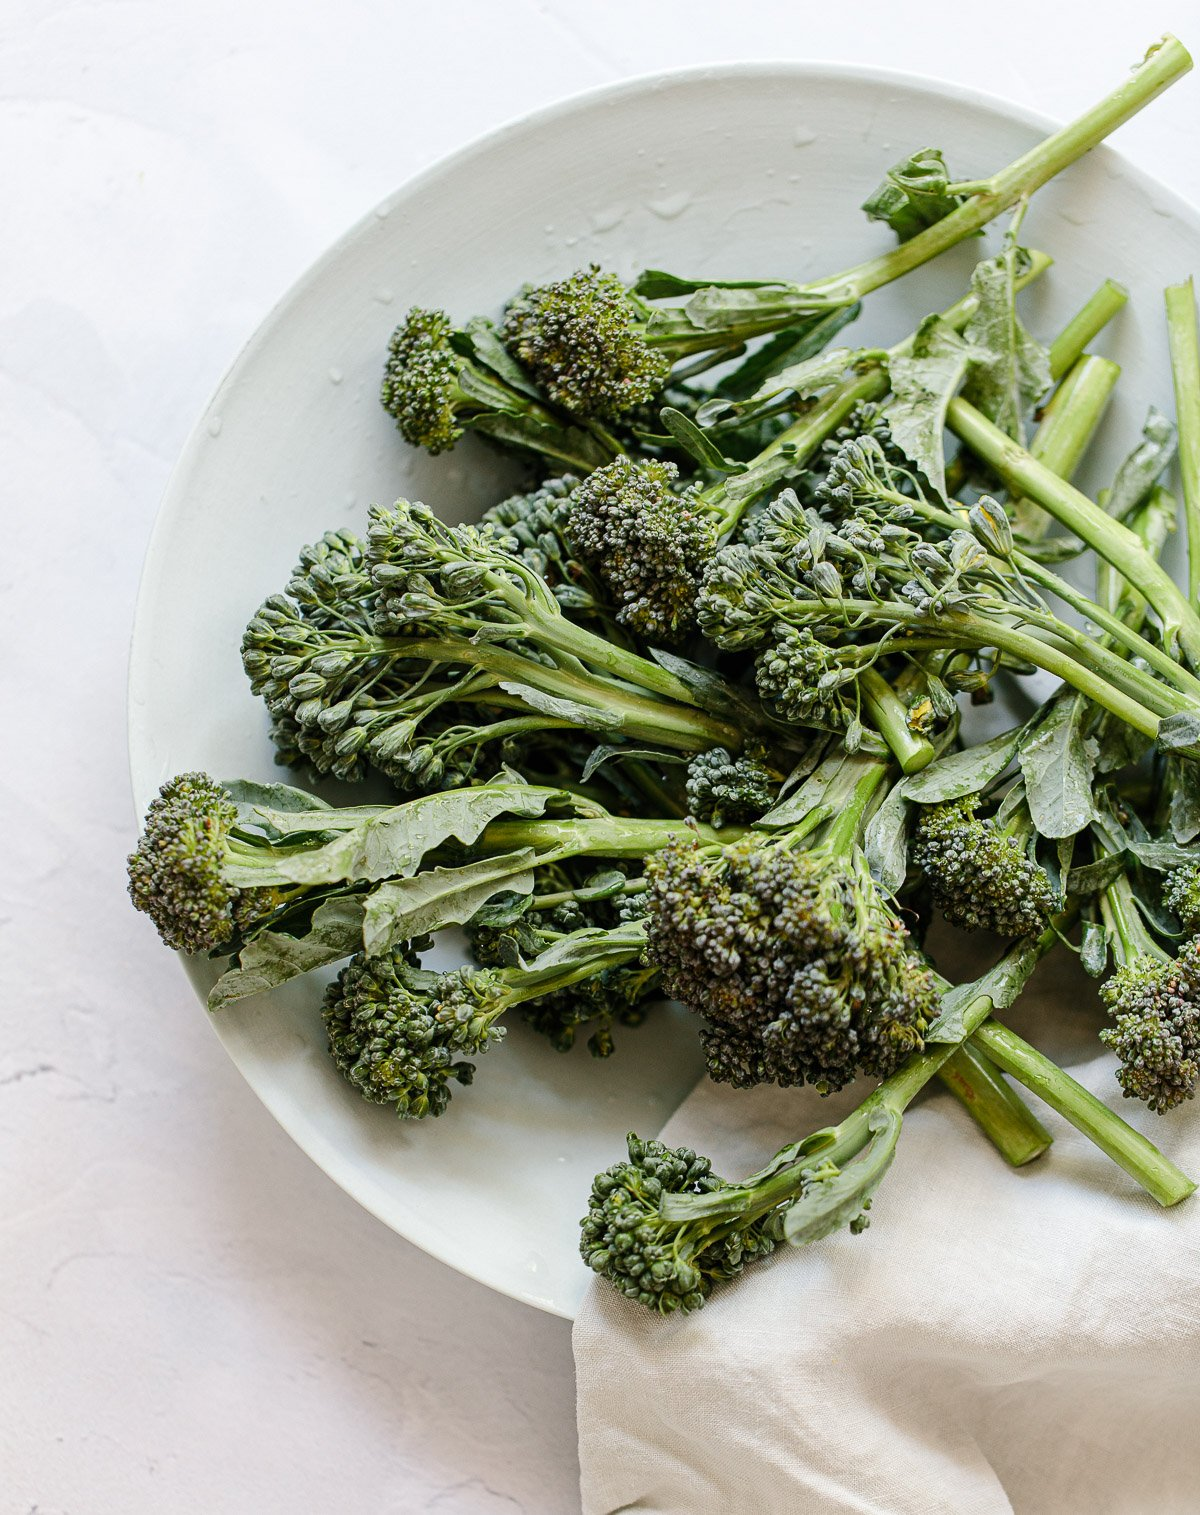 Image: Broccolini spears and florets arranged on a bowl with a napkin.